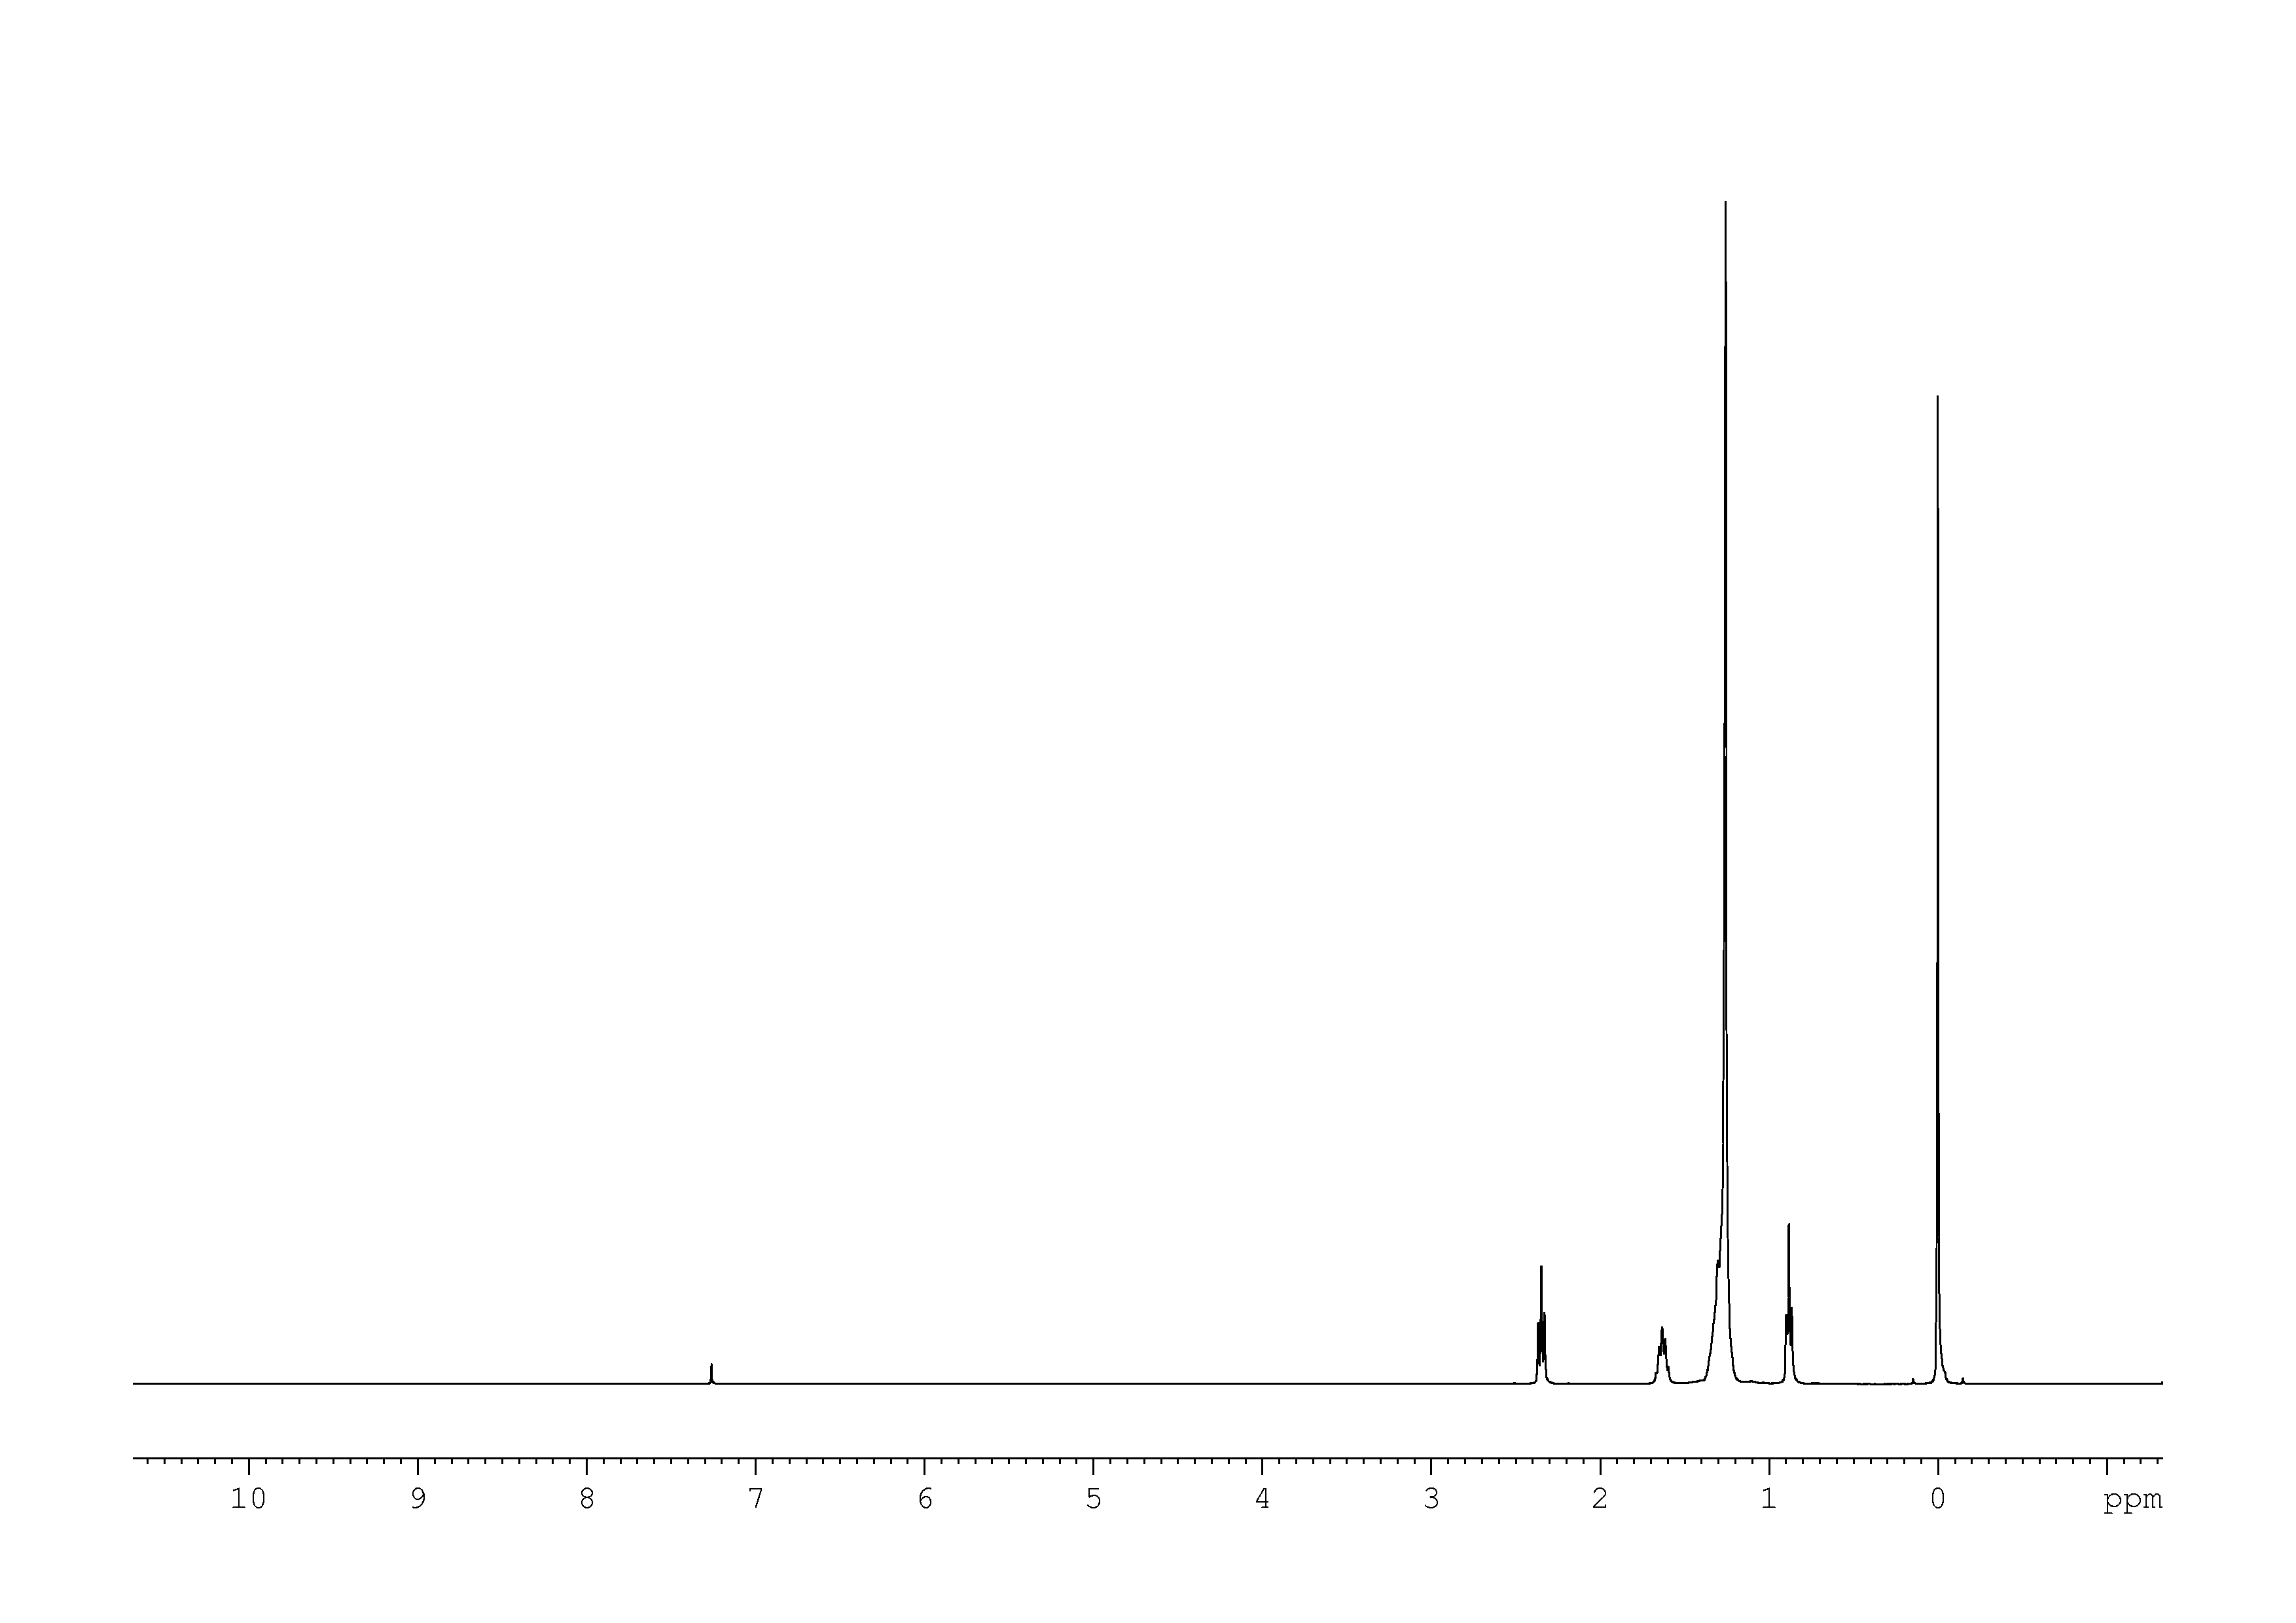 1D 1H, n/a spectrum for pentadecanoic acid